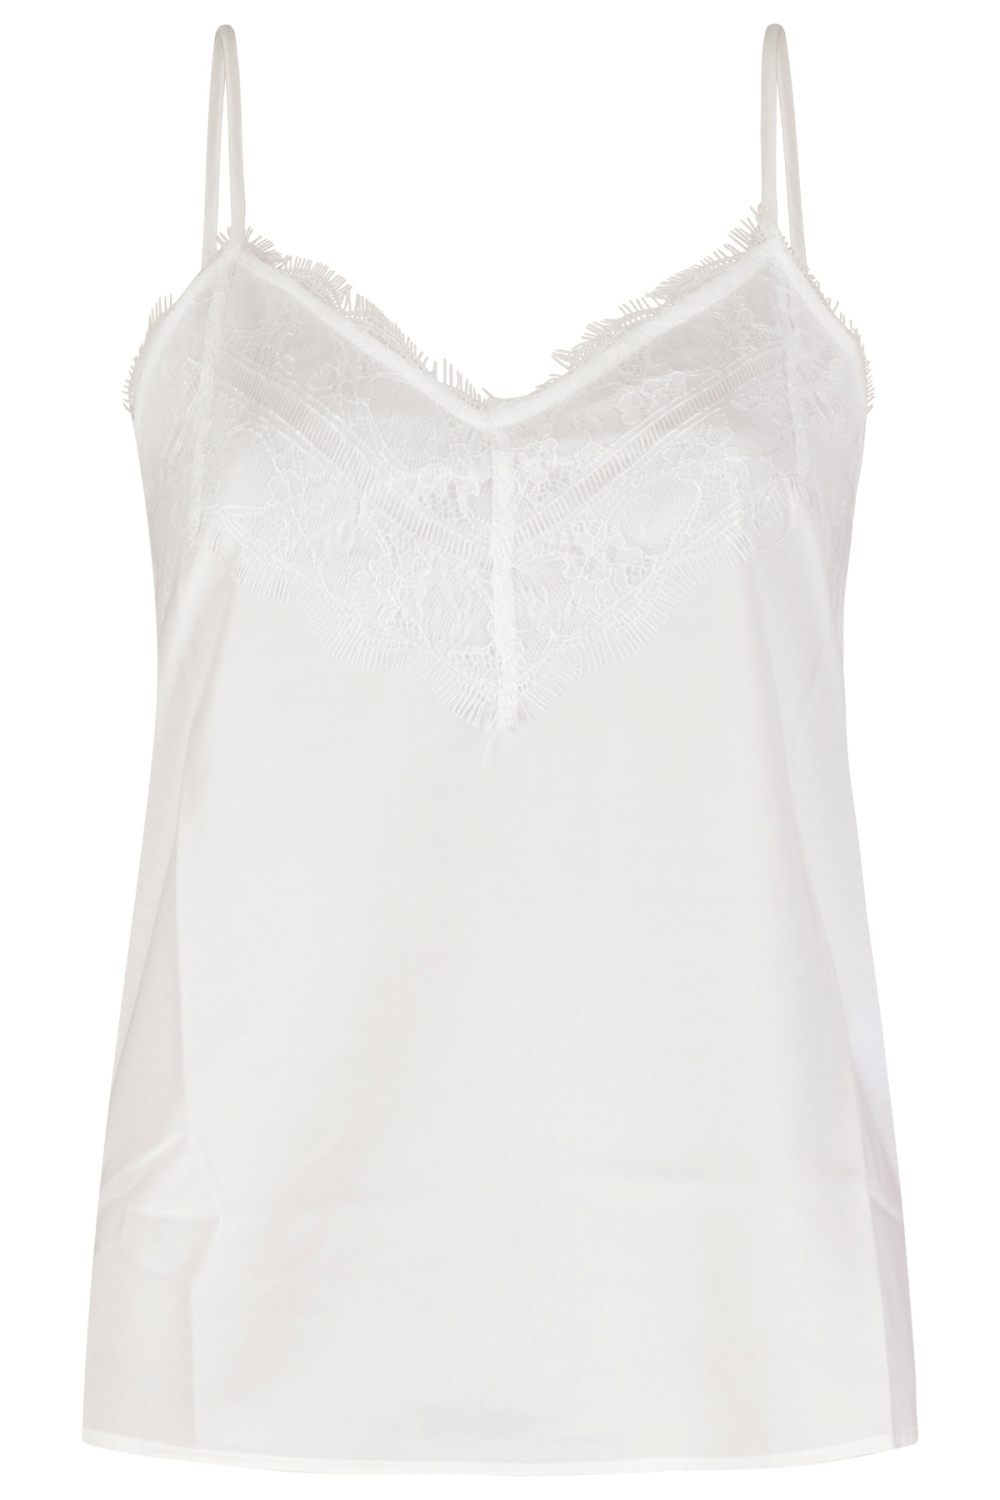 Object Shirt / Top Wit 23031002